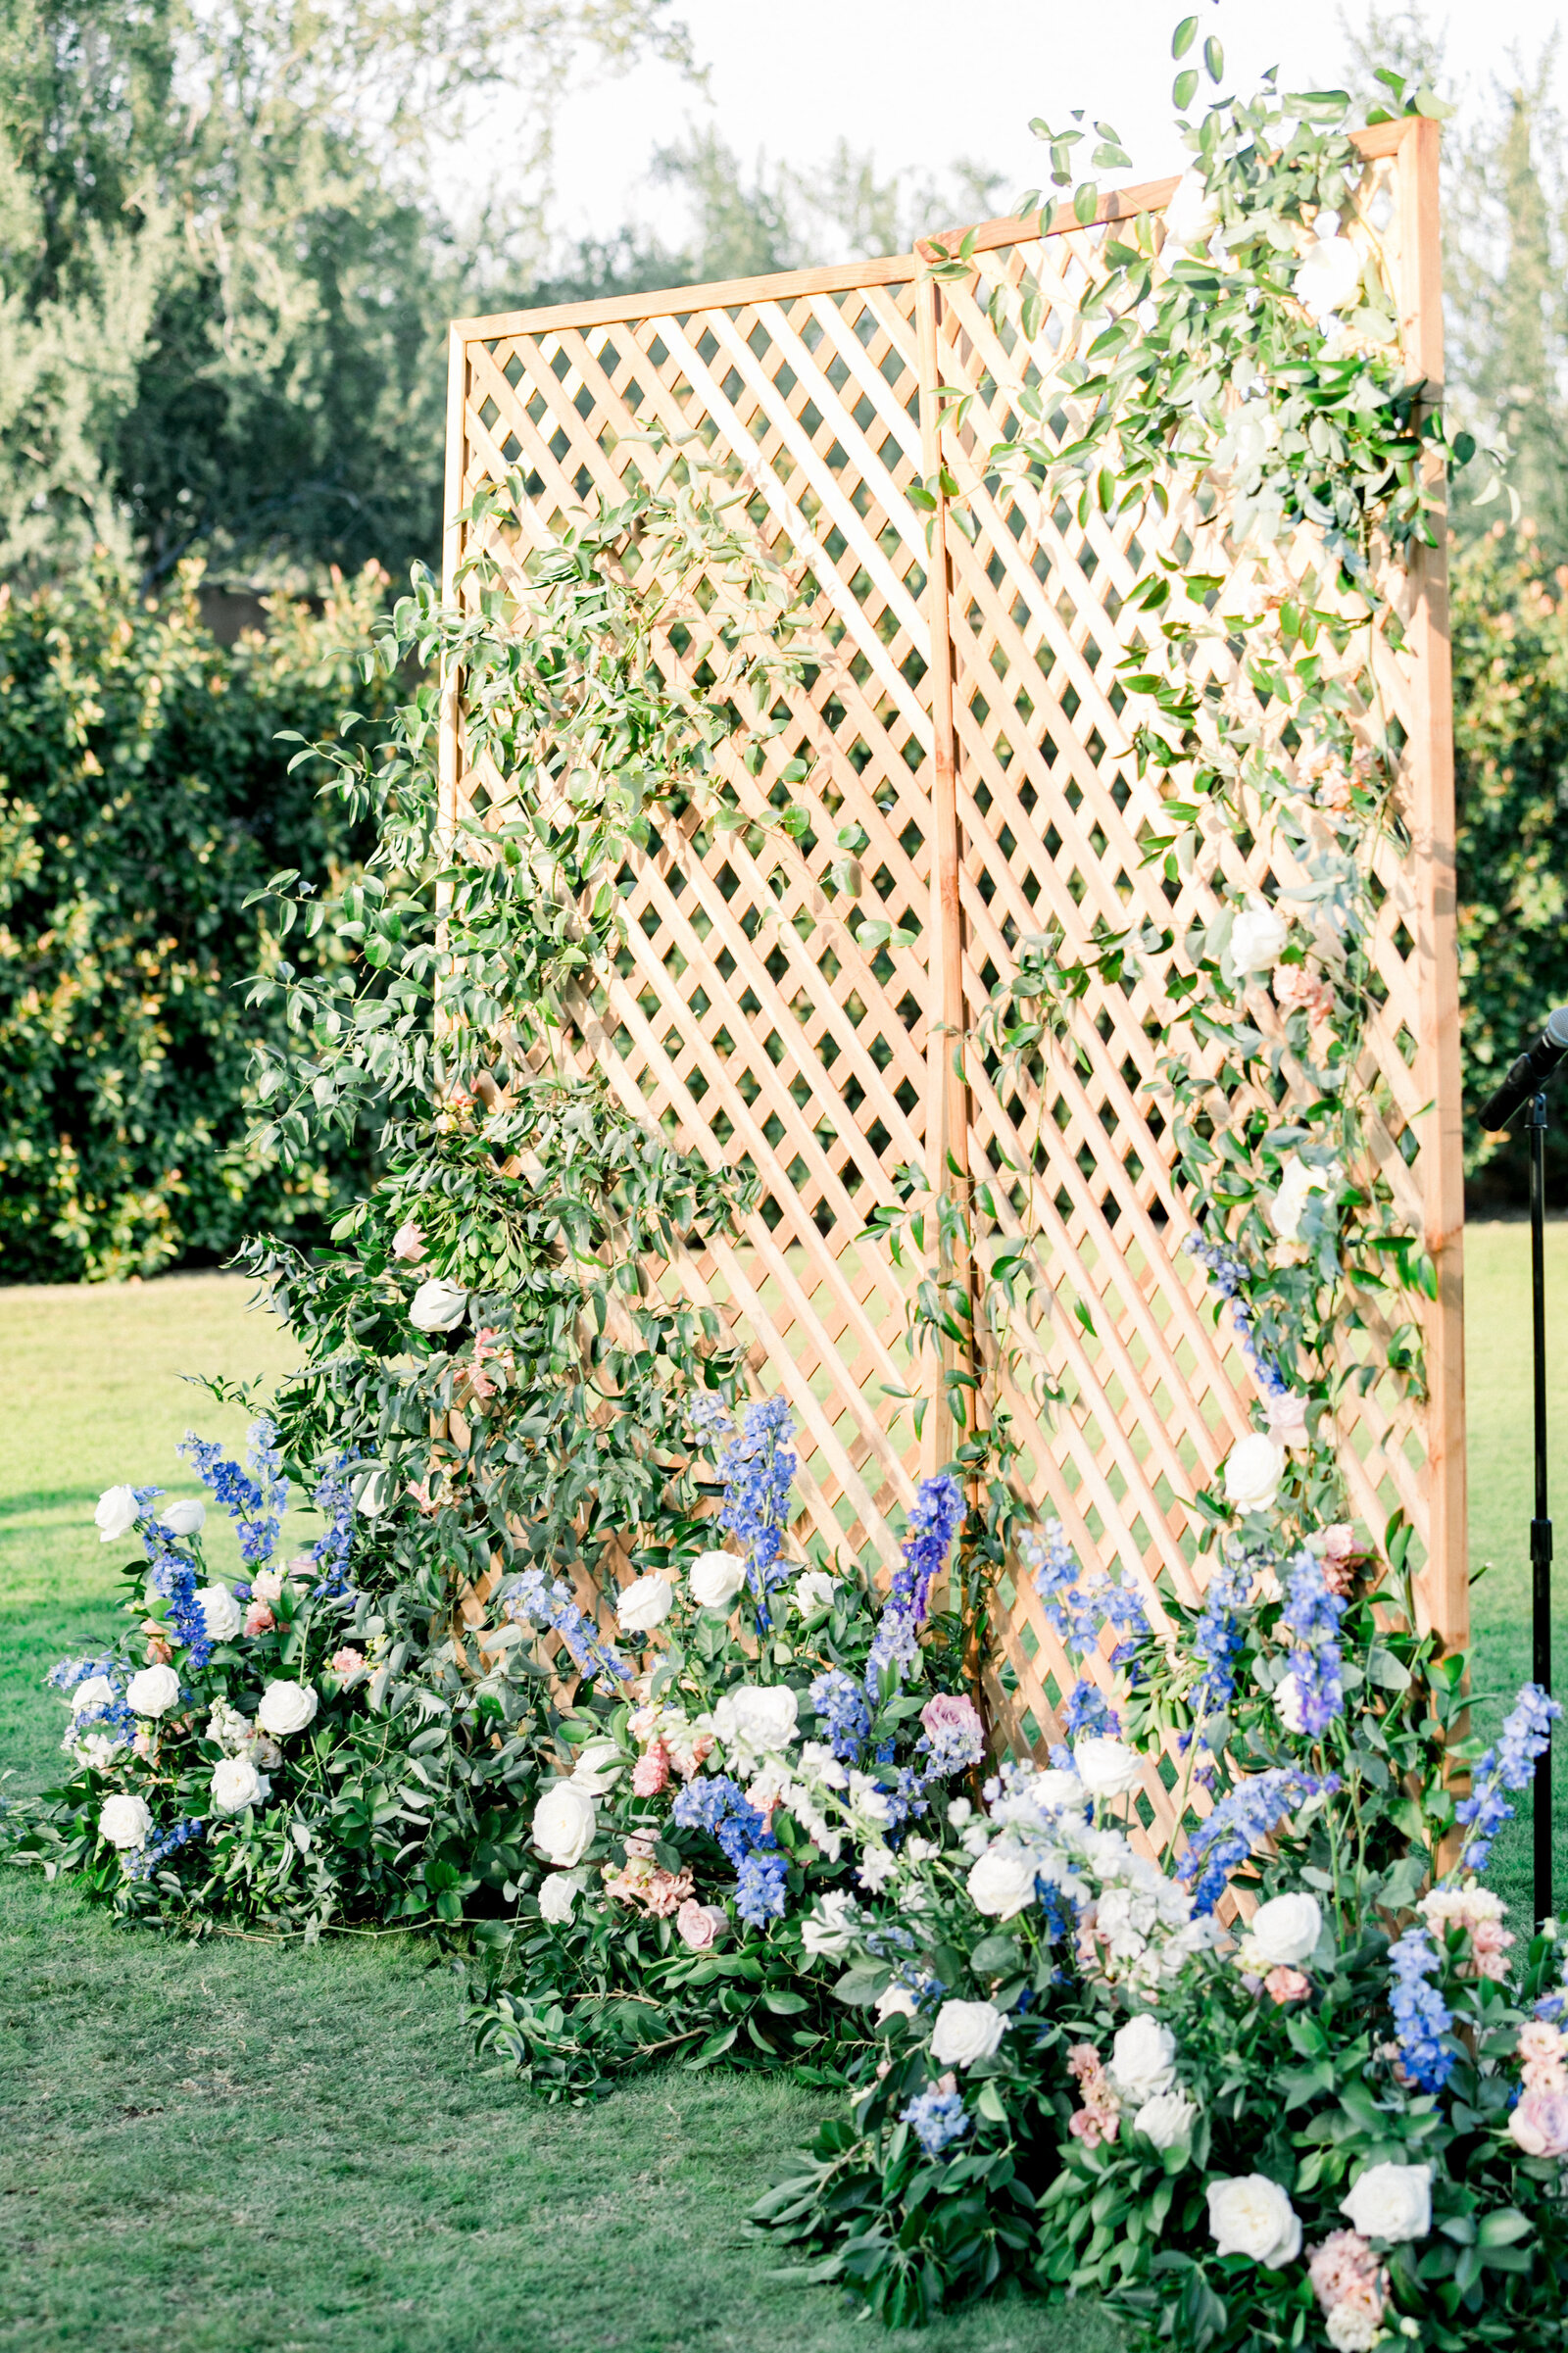 tempe-florist-wedding-altar-flowers